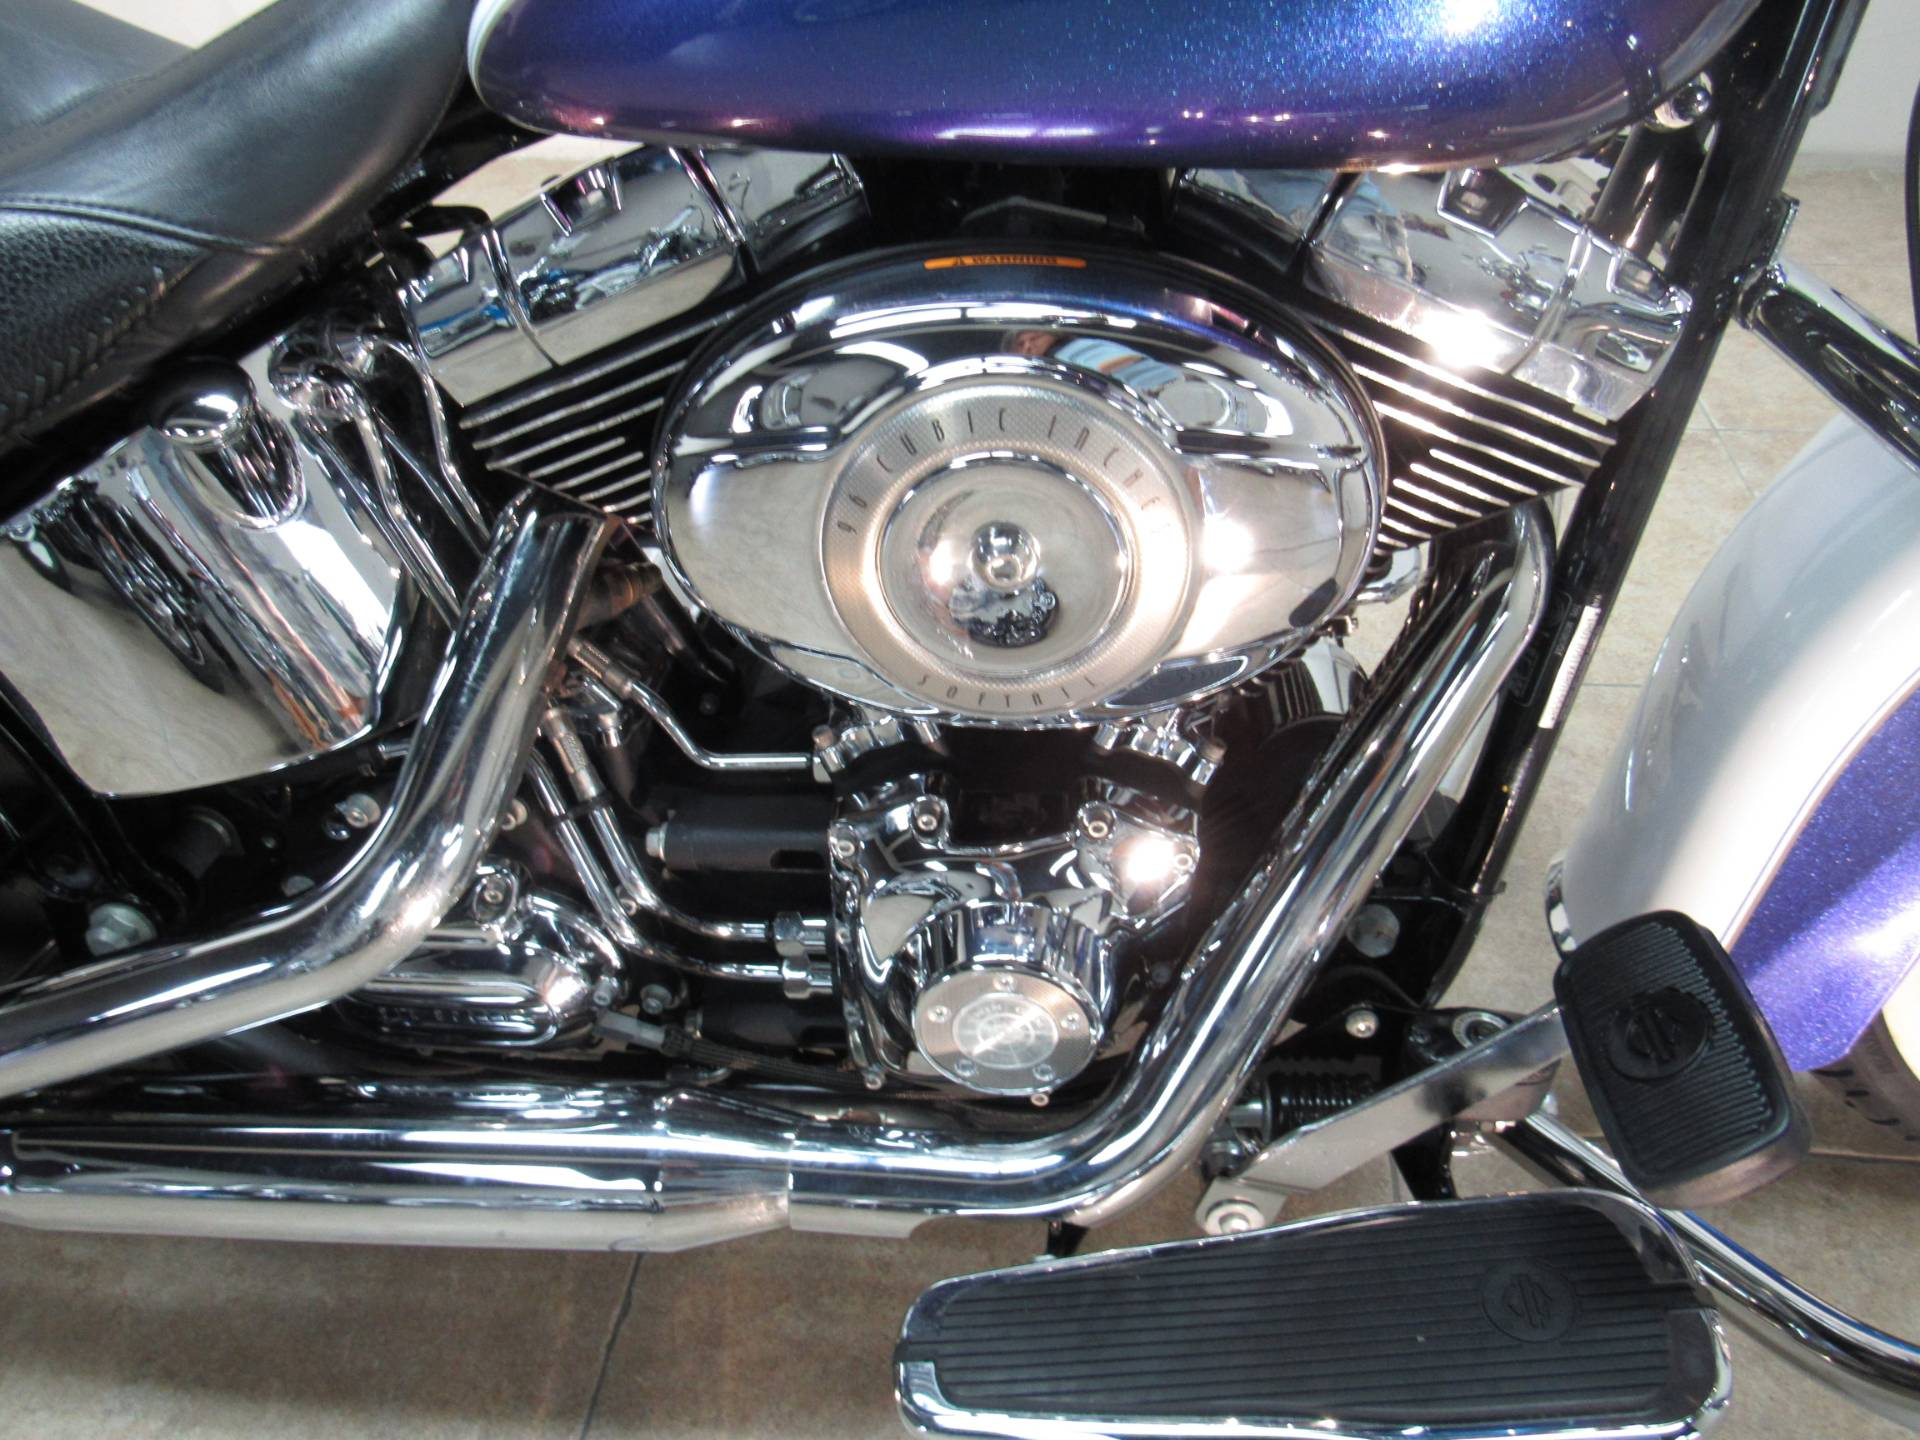 2010 Harley-Davidson Softail® Deluxe in Temecula, California - Photo 11